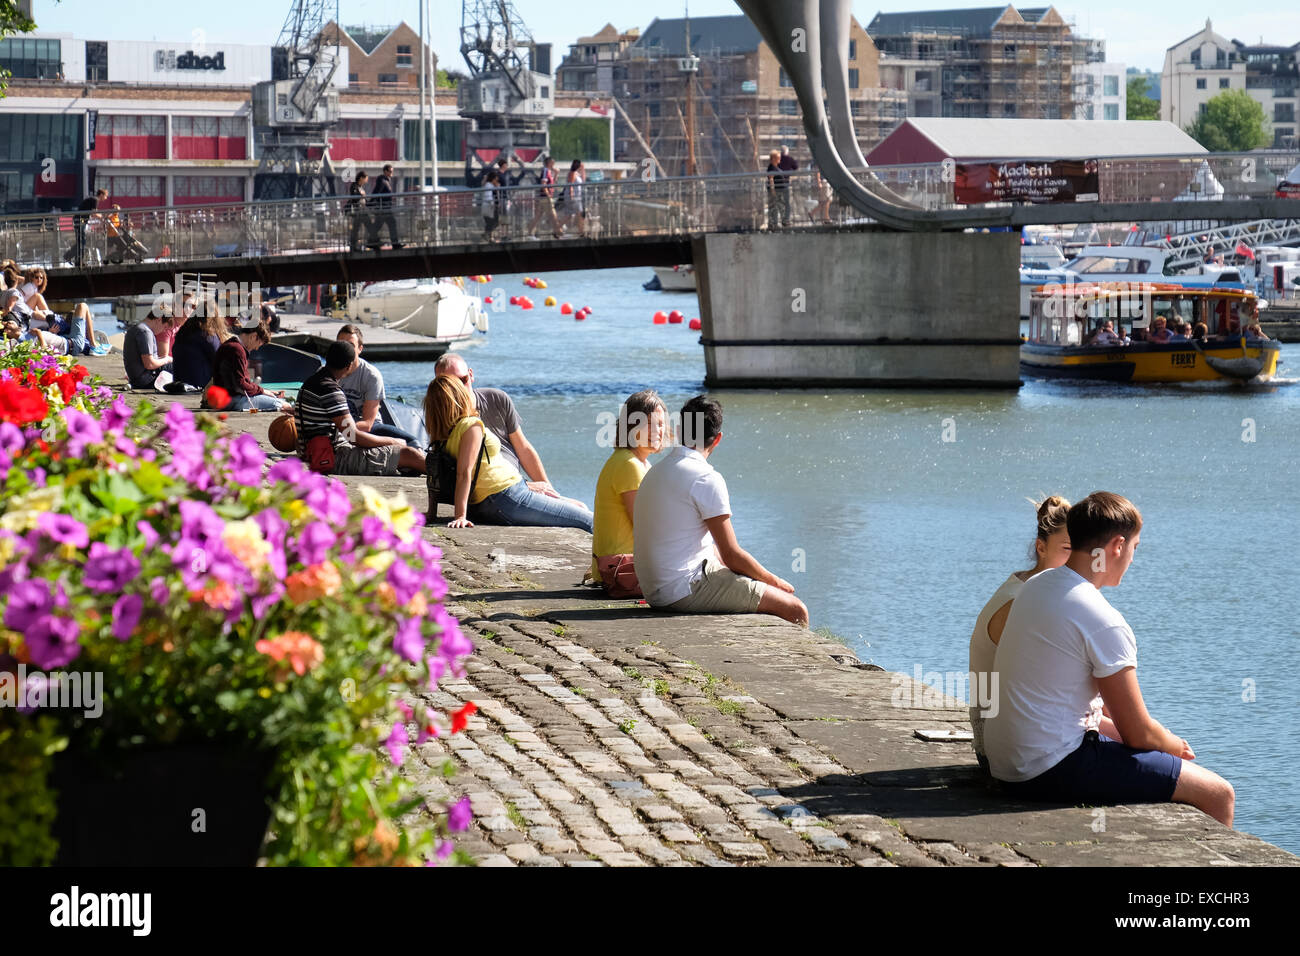 People relaxing and enjoying the sunshine at the Harbourside in Bristol, UK - Stock Image